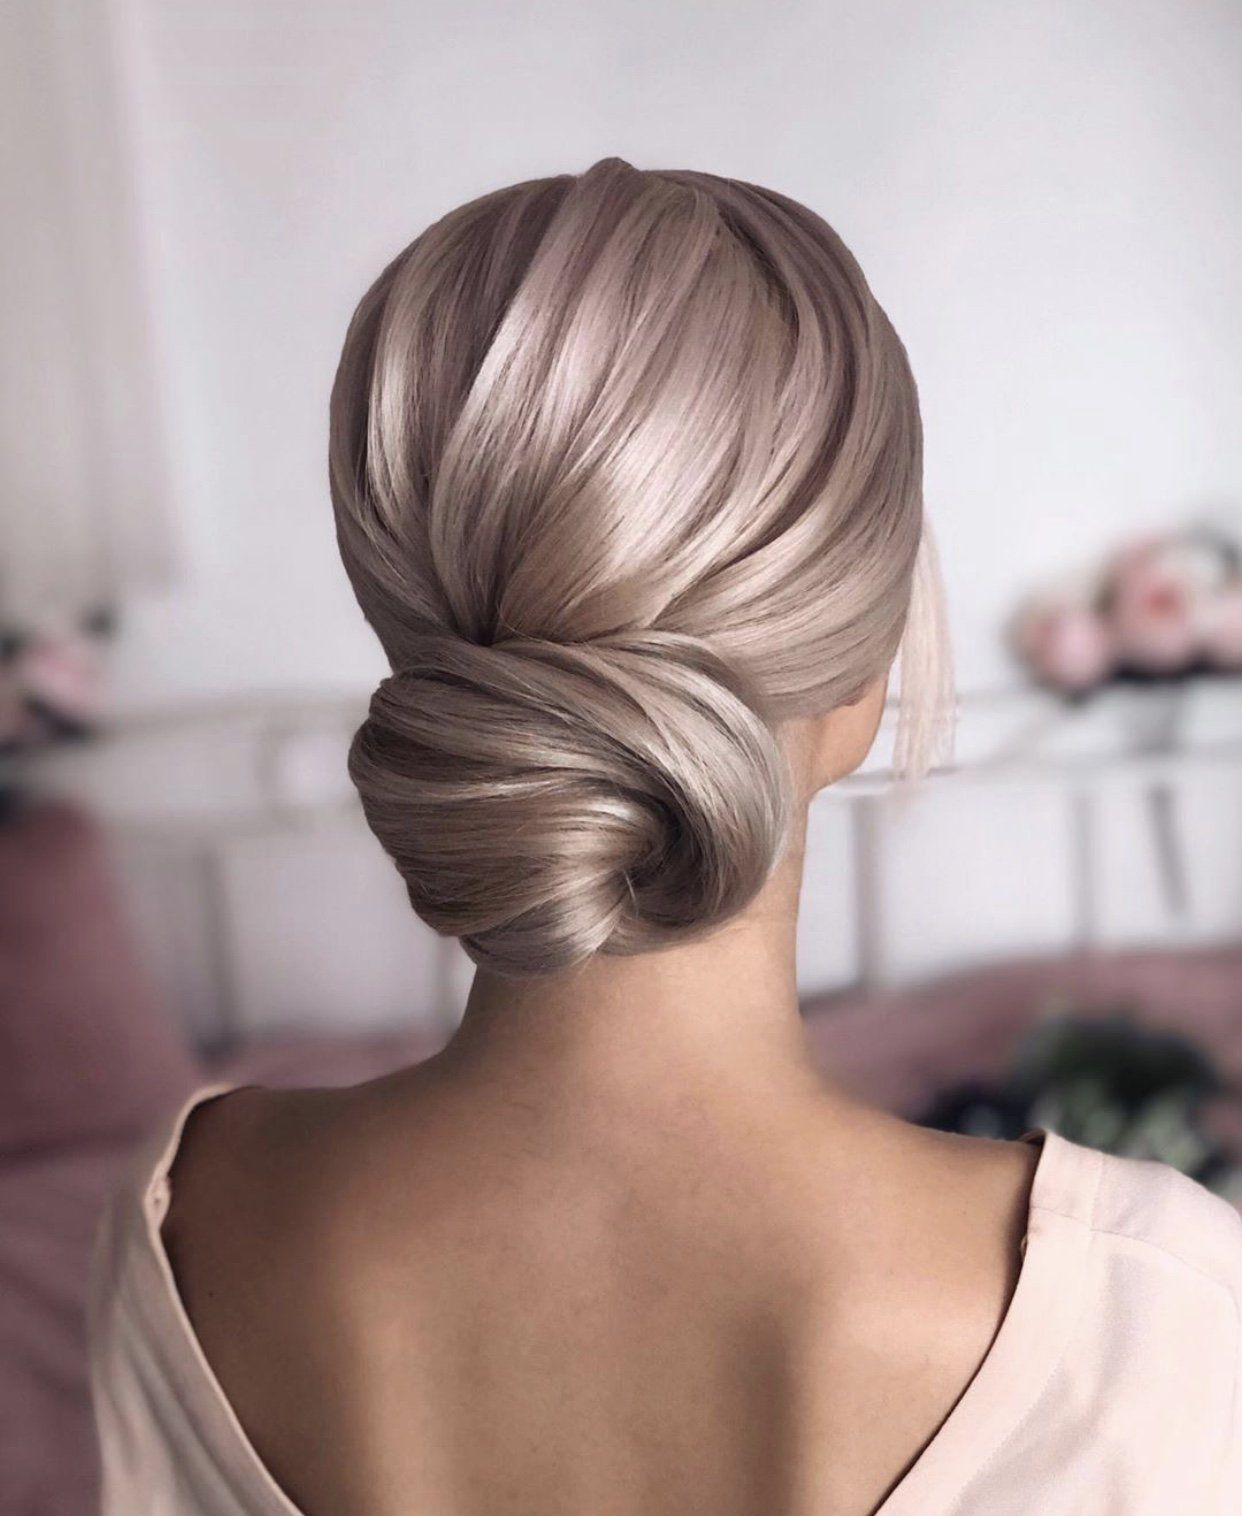 Updo Inspiration for Holiday Hair